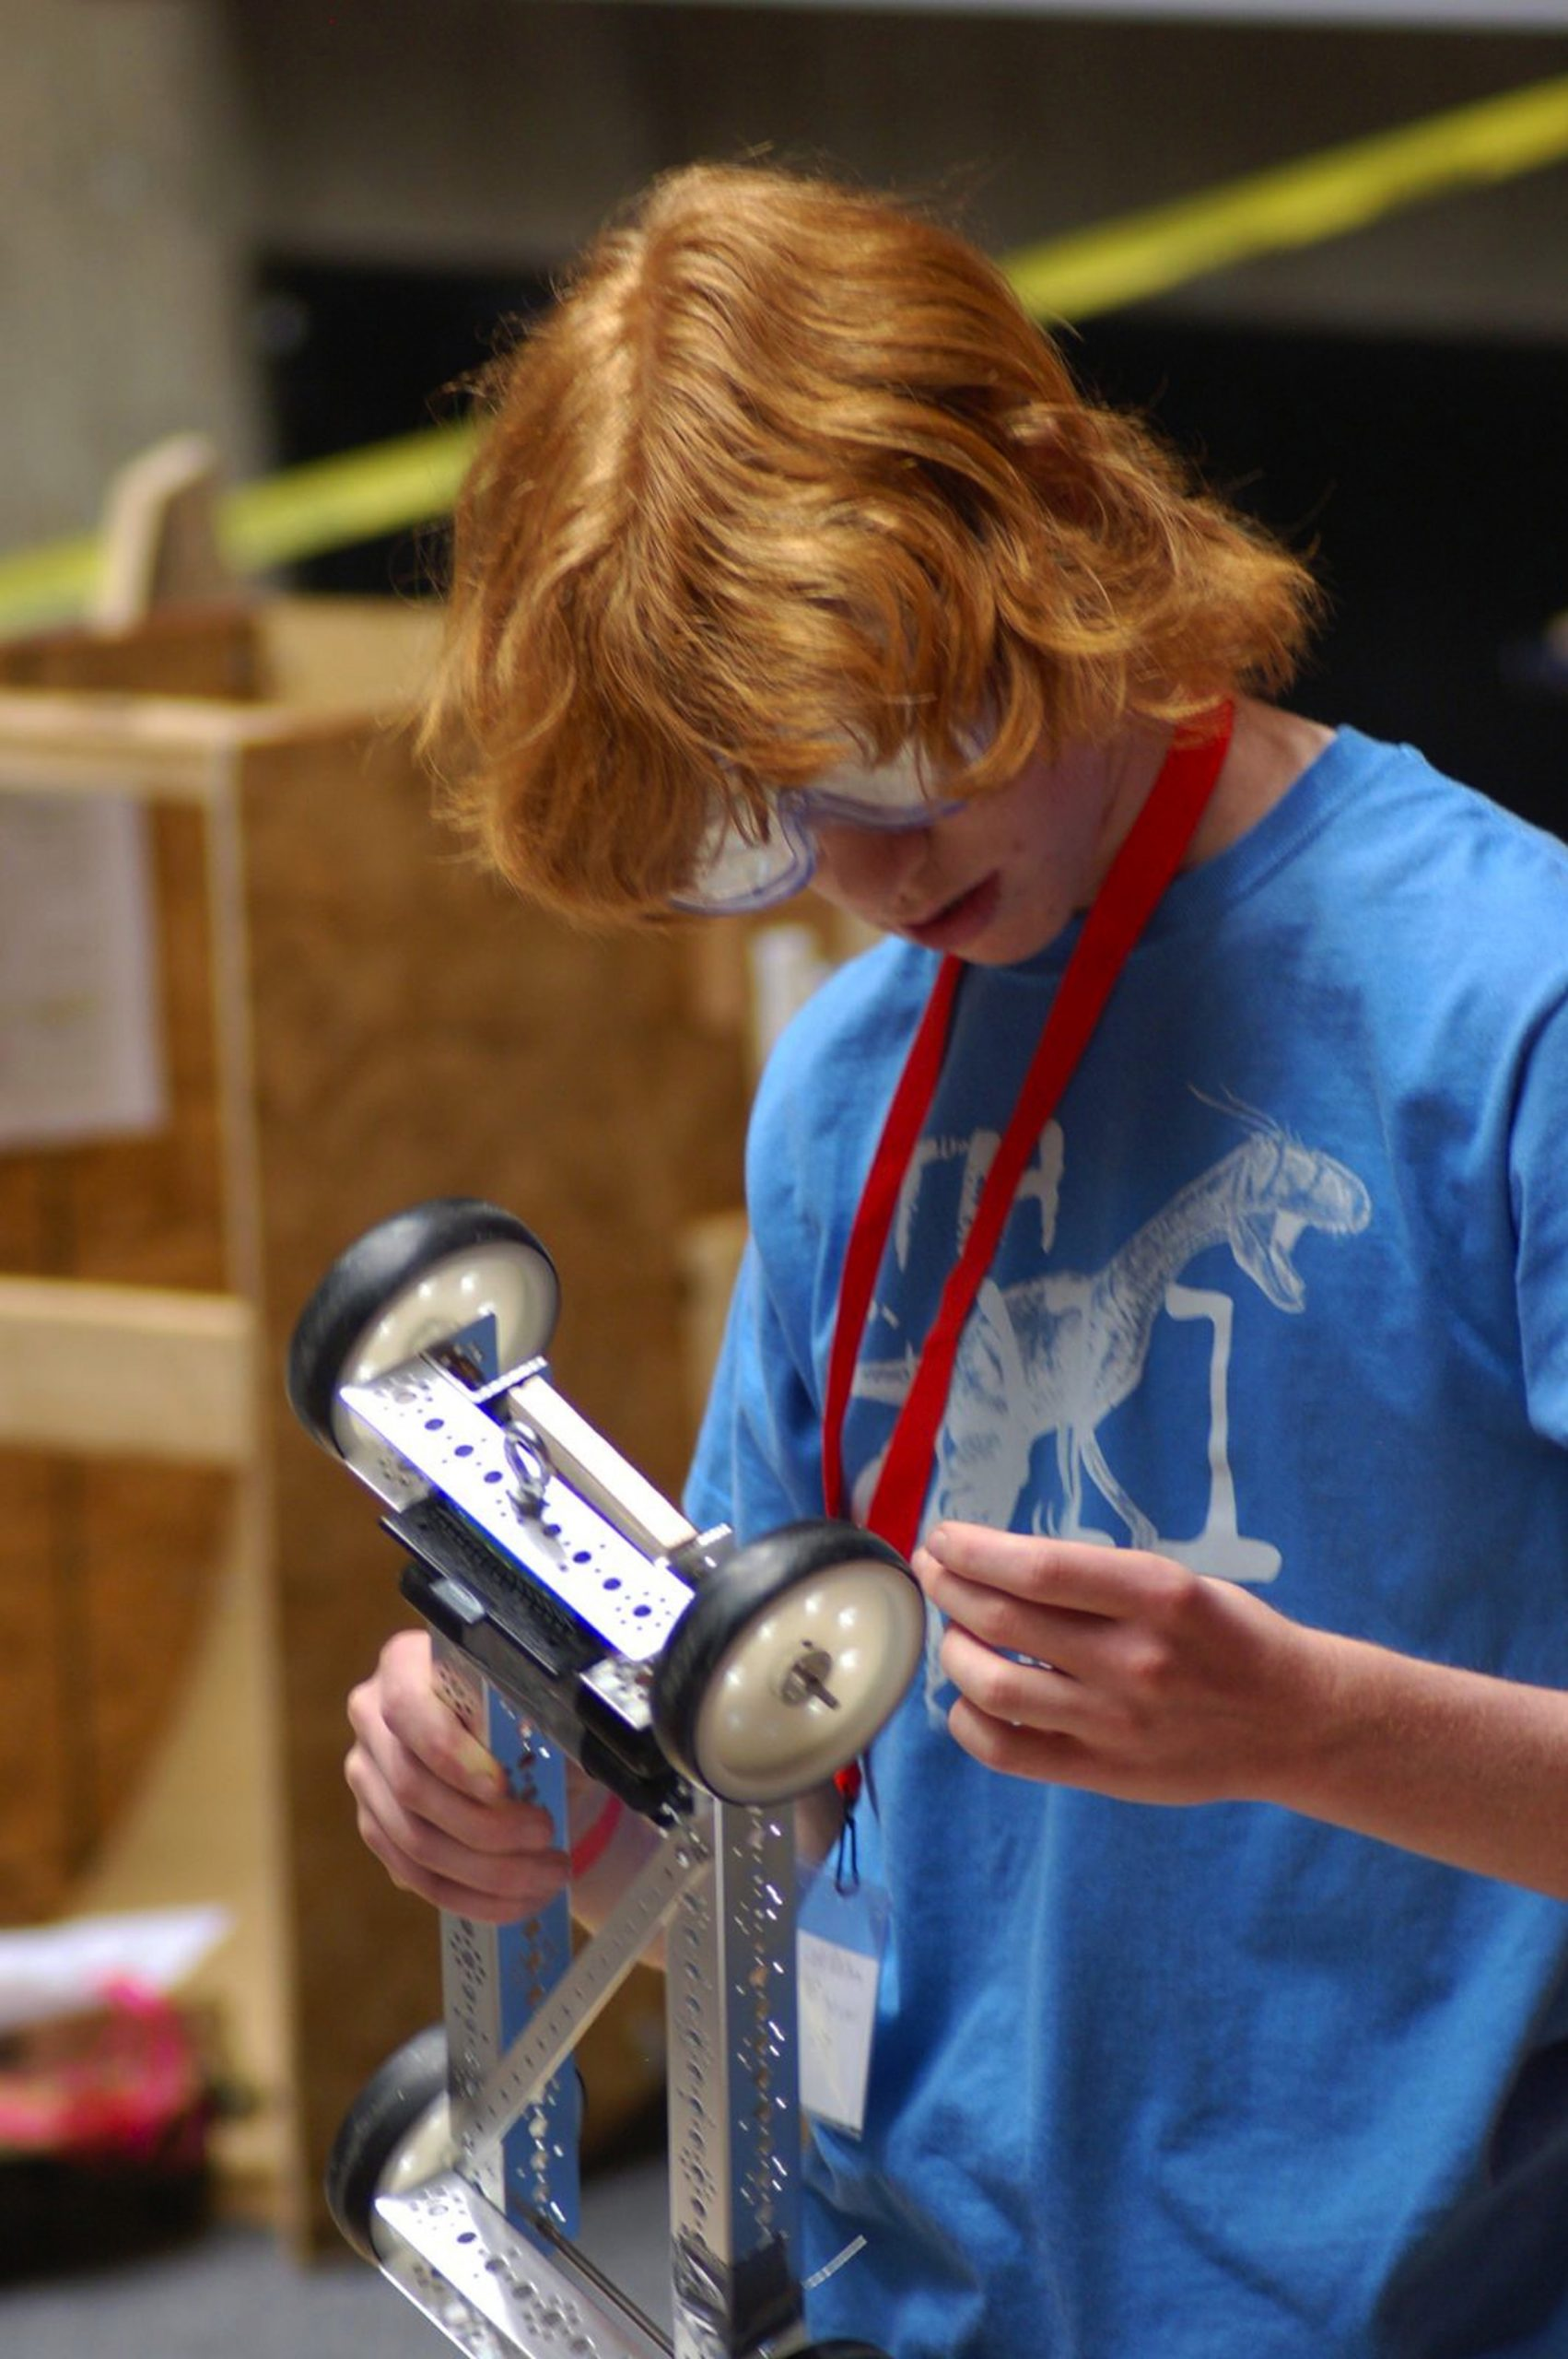 A student competing in the 2012 Utah Science Olympiad adjusts a wheel on his vehicle. More than 900 students will descend on the University of Utah campus for the 2013 Utah Science Olympiad on Saturday, April 13.